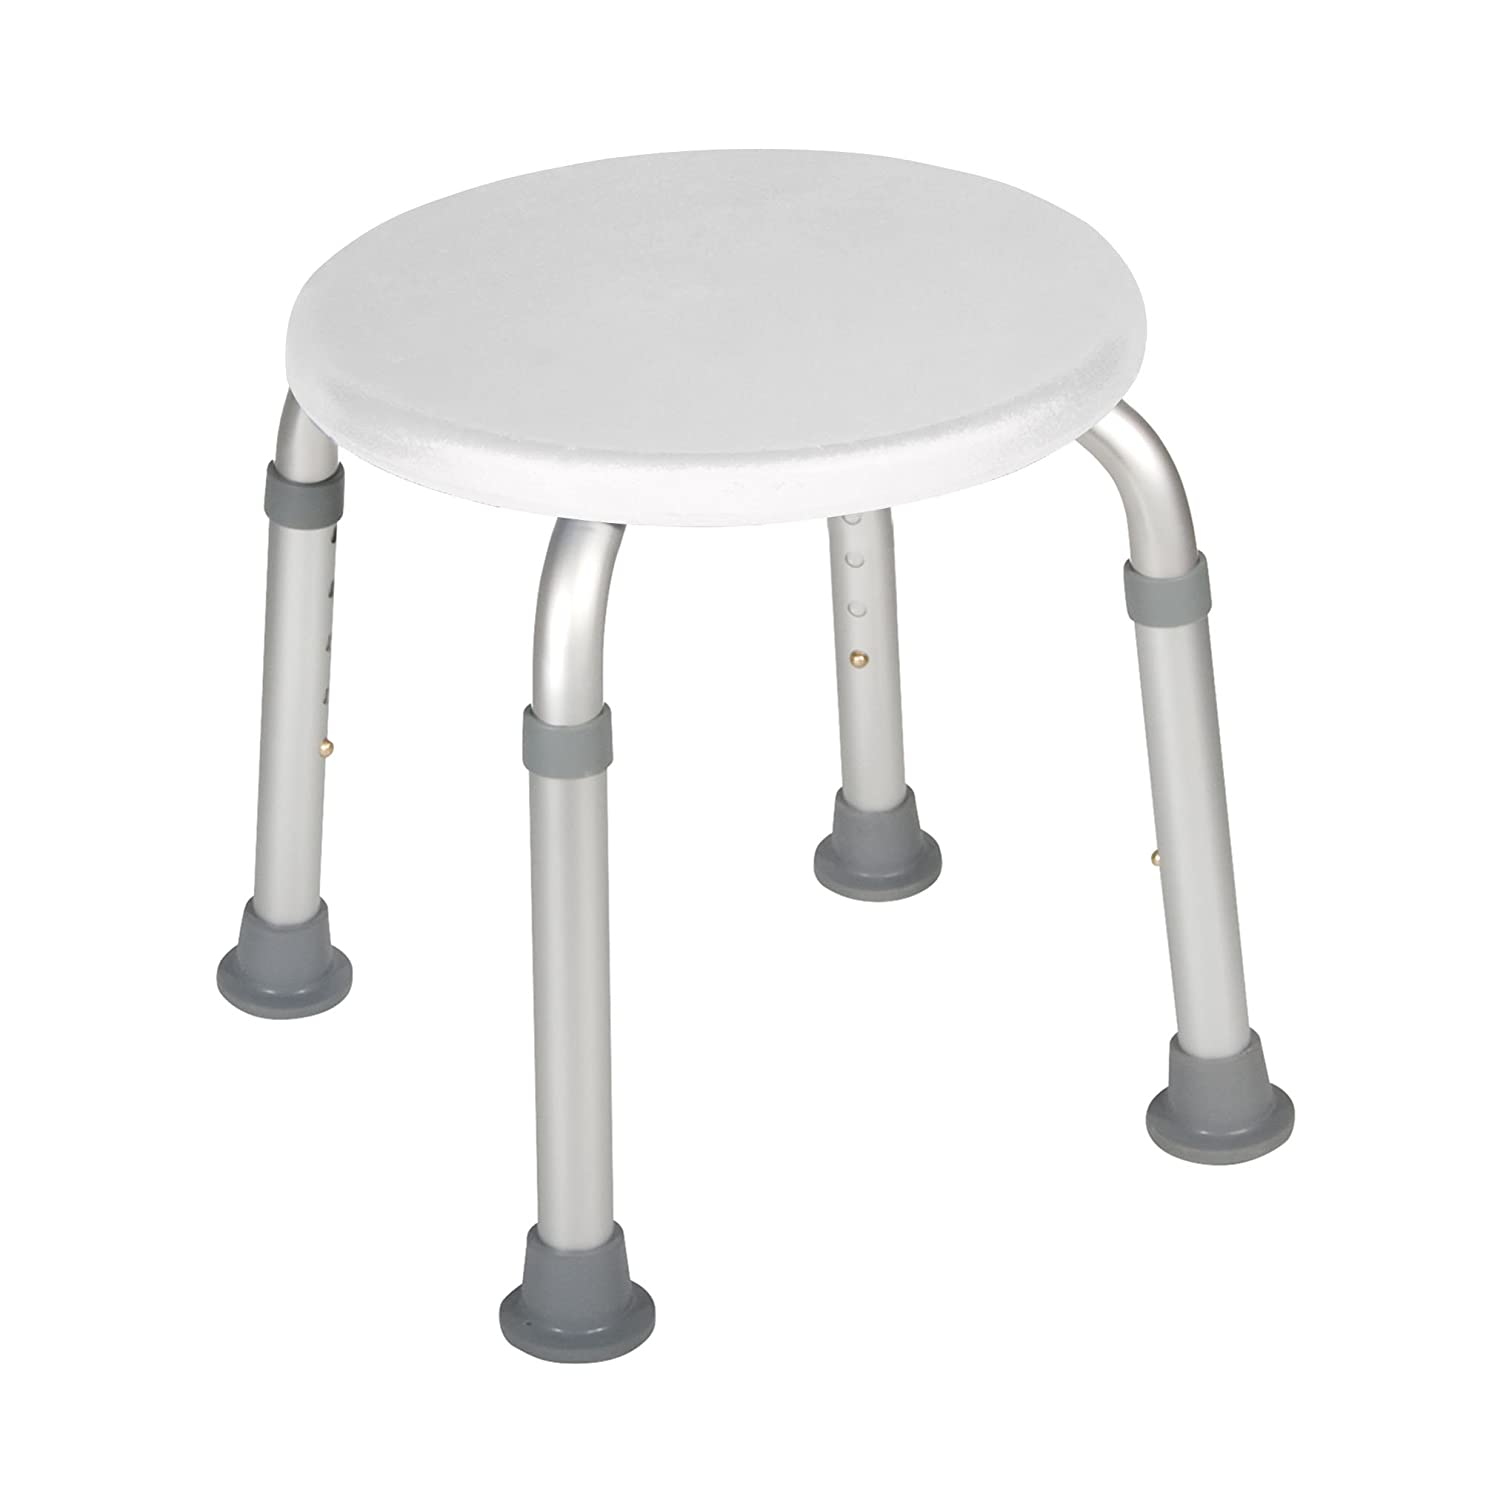 products safe etac stools are smart and offers showering edge sturdy easy all shower stool bathing different three